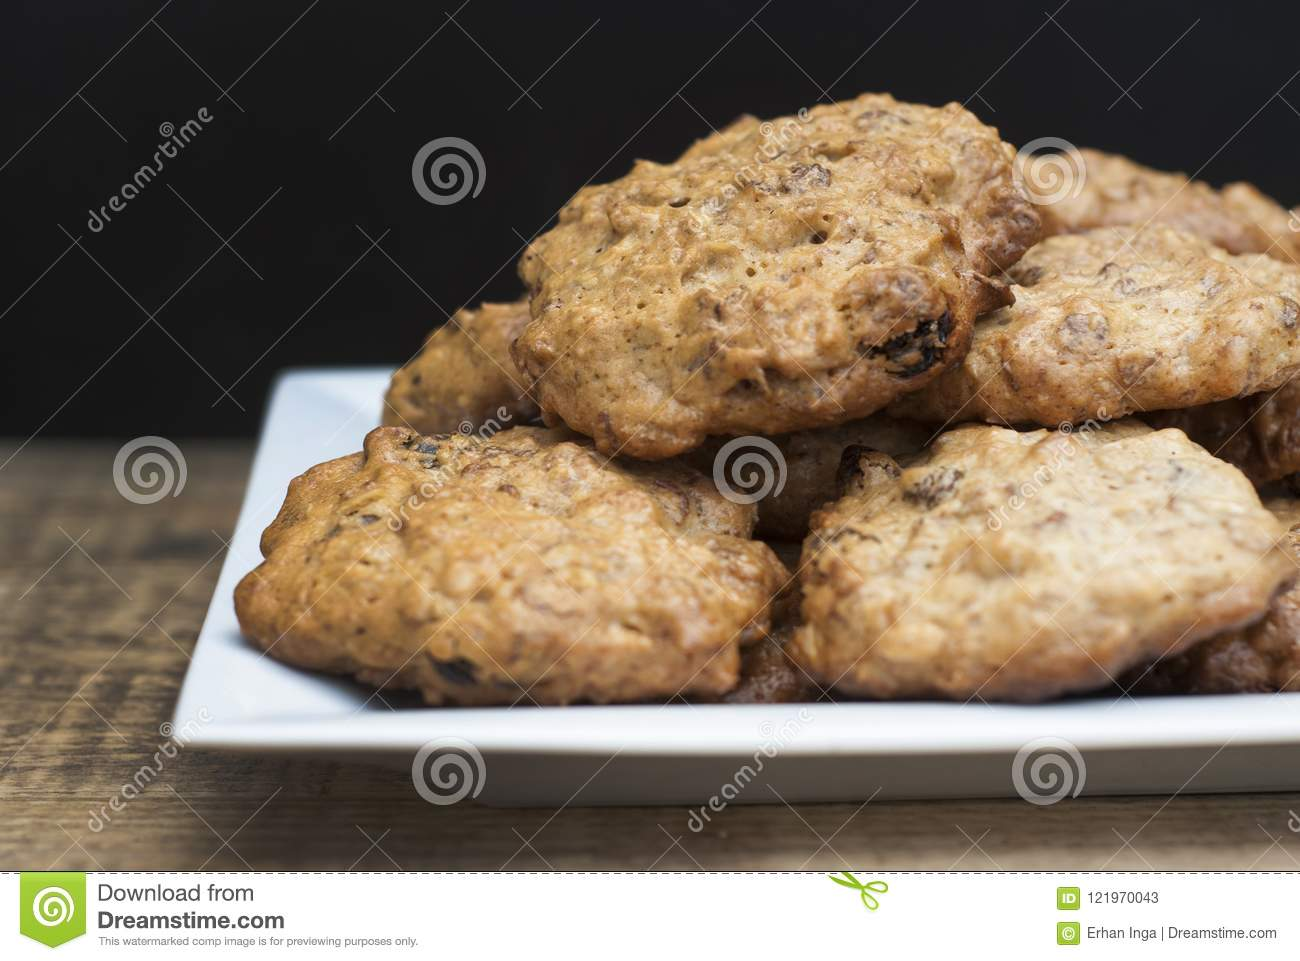 Homemade oatmeal cookies in white square plate,on wooden board and Black background. Sweet dessert snack, Healthy Food. Copy space